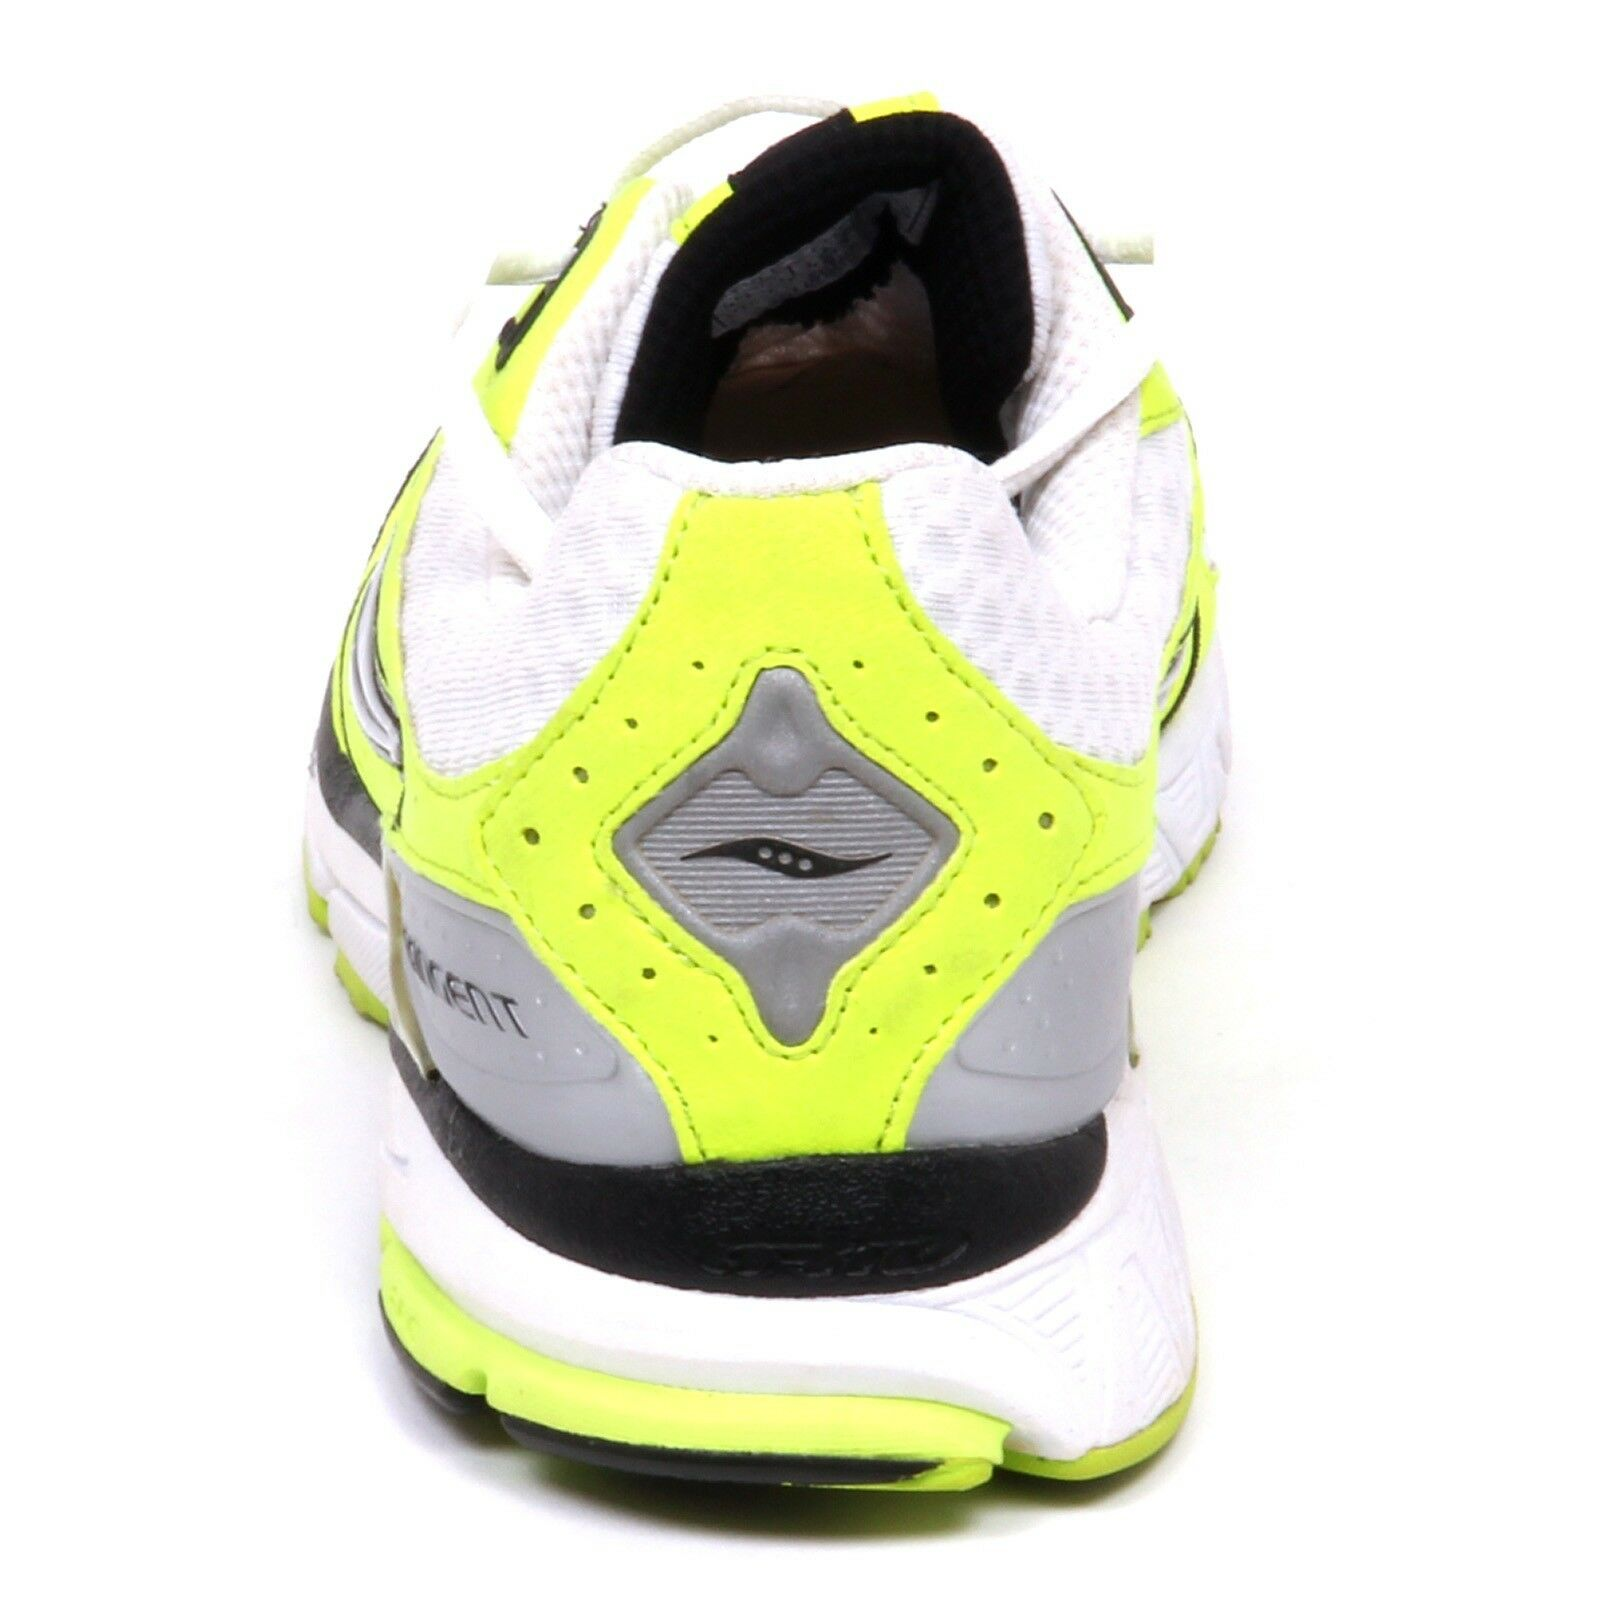 E5198 sneakers uomo TANGENT SAUCONY GRID TANGENT uomo shoes men 29a96e